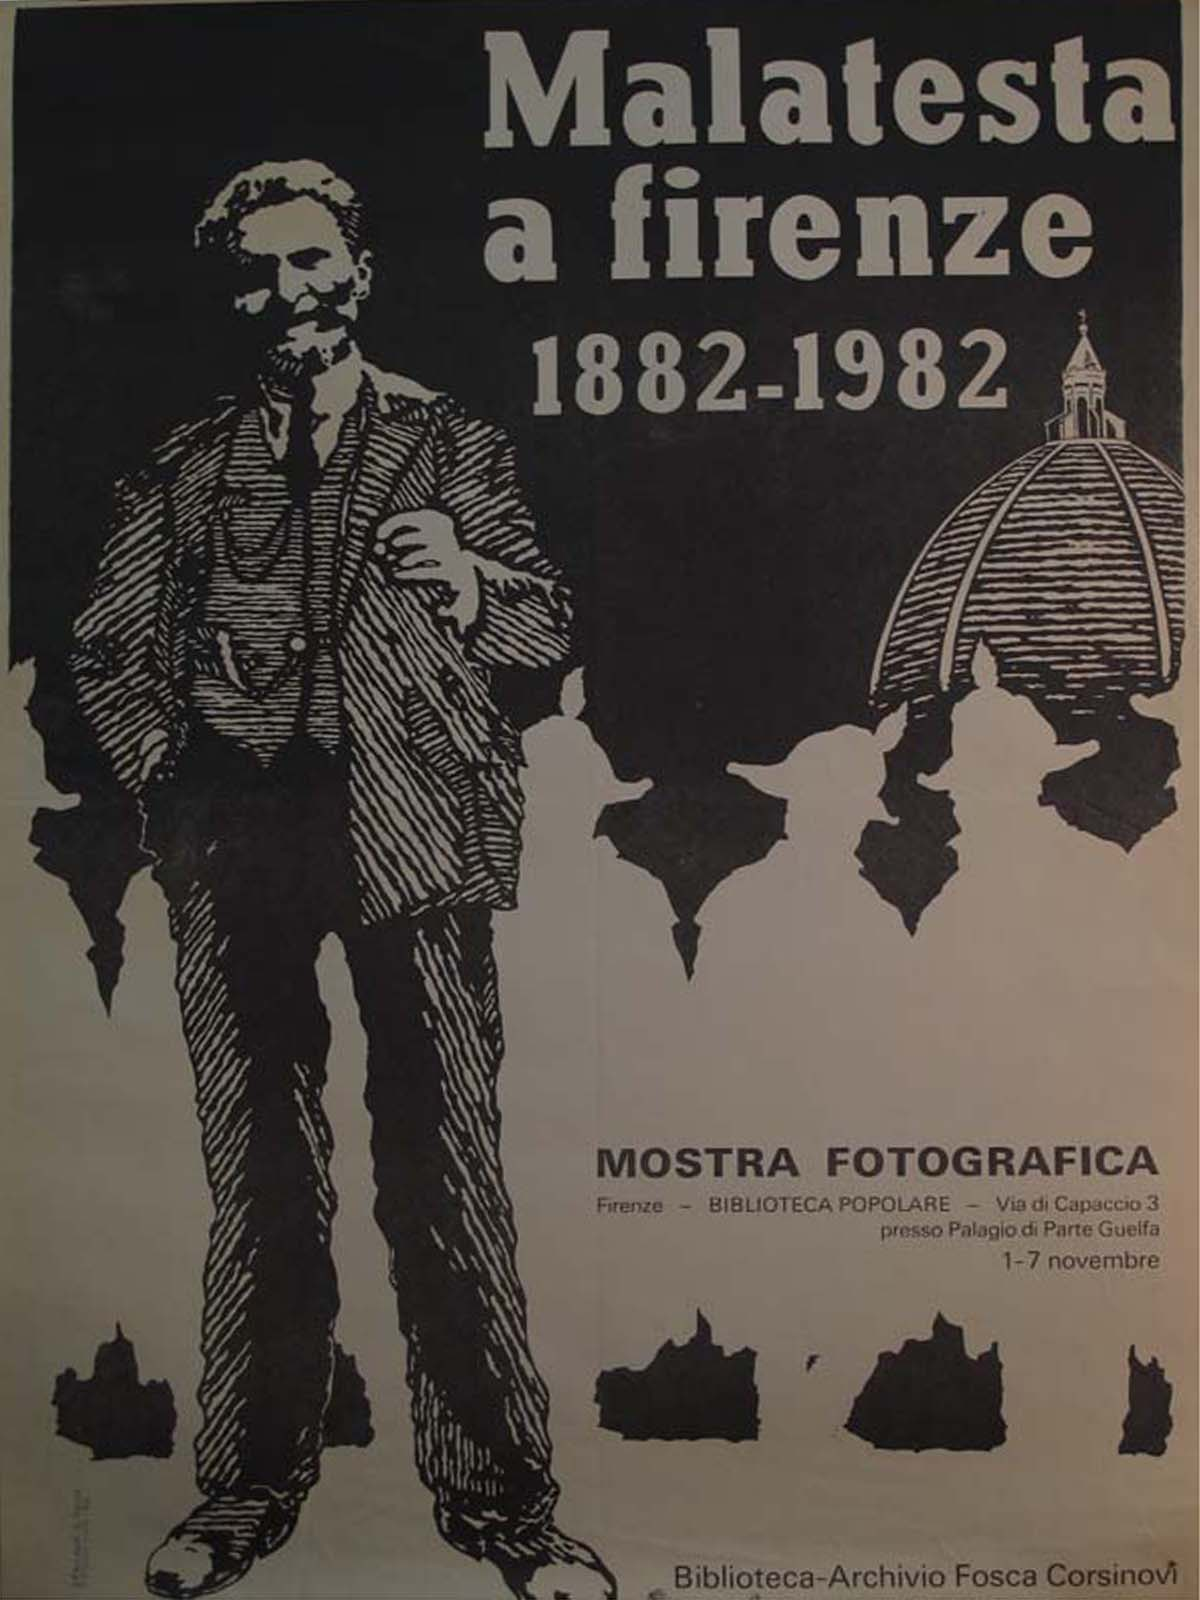 Malatesta a Firenze 1882-1982 - 1200 × 1600 px